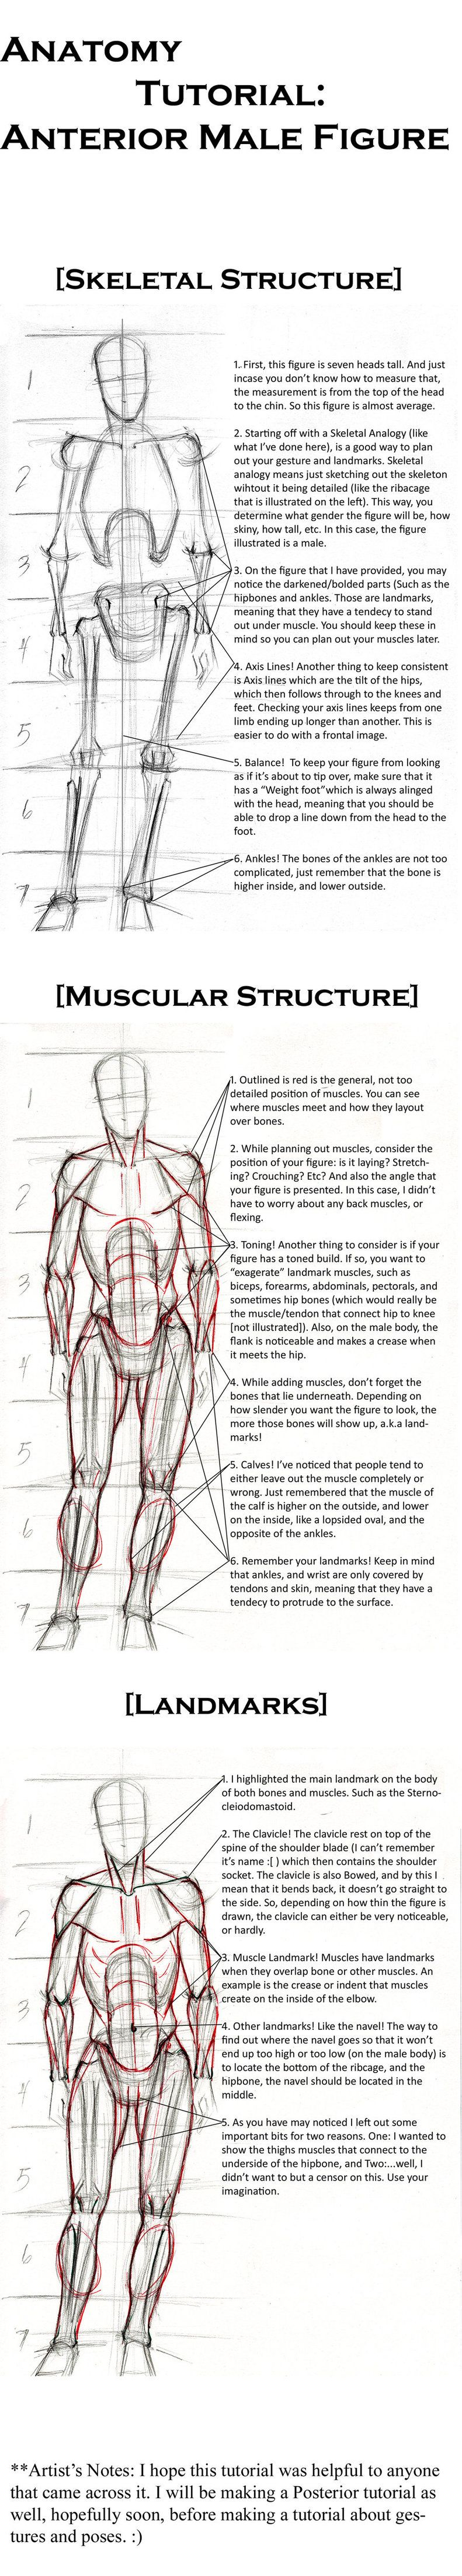 Anatomy tutorial anterior by life symphonyiantart on anatomy tutorial anterior by life symphonyiantart on deviantart ccuart Images